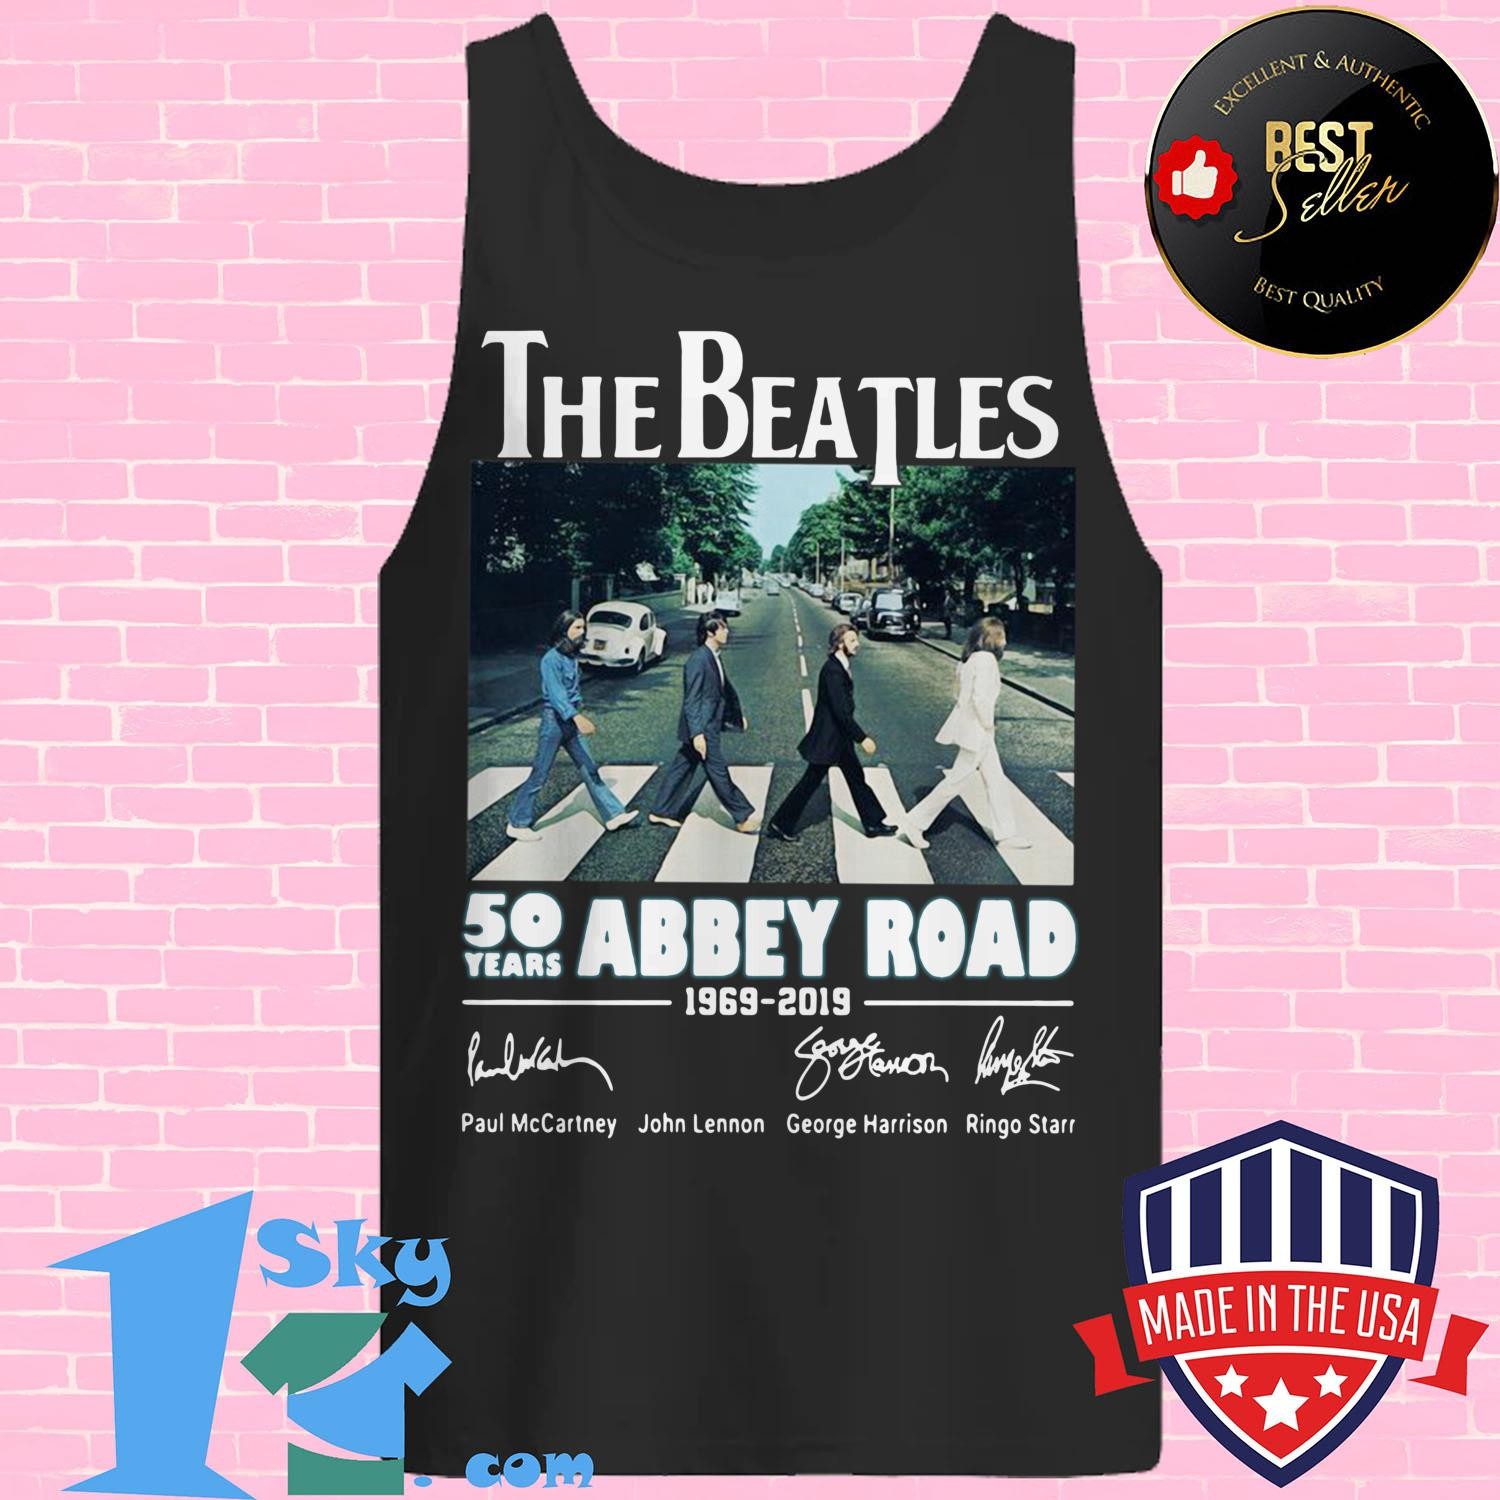 the beatles 50 years abbey road 1969 2019 signature tank top - The Beatles 50 years Abbey Road 1969–2019 signature shirt